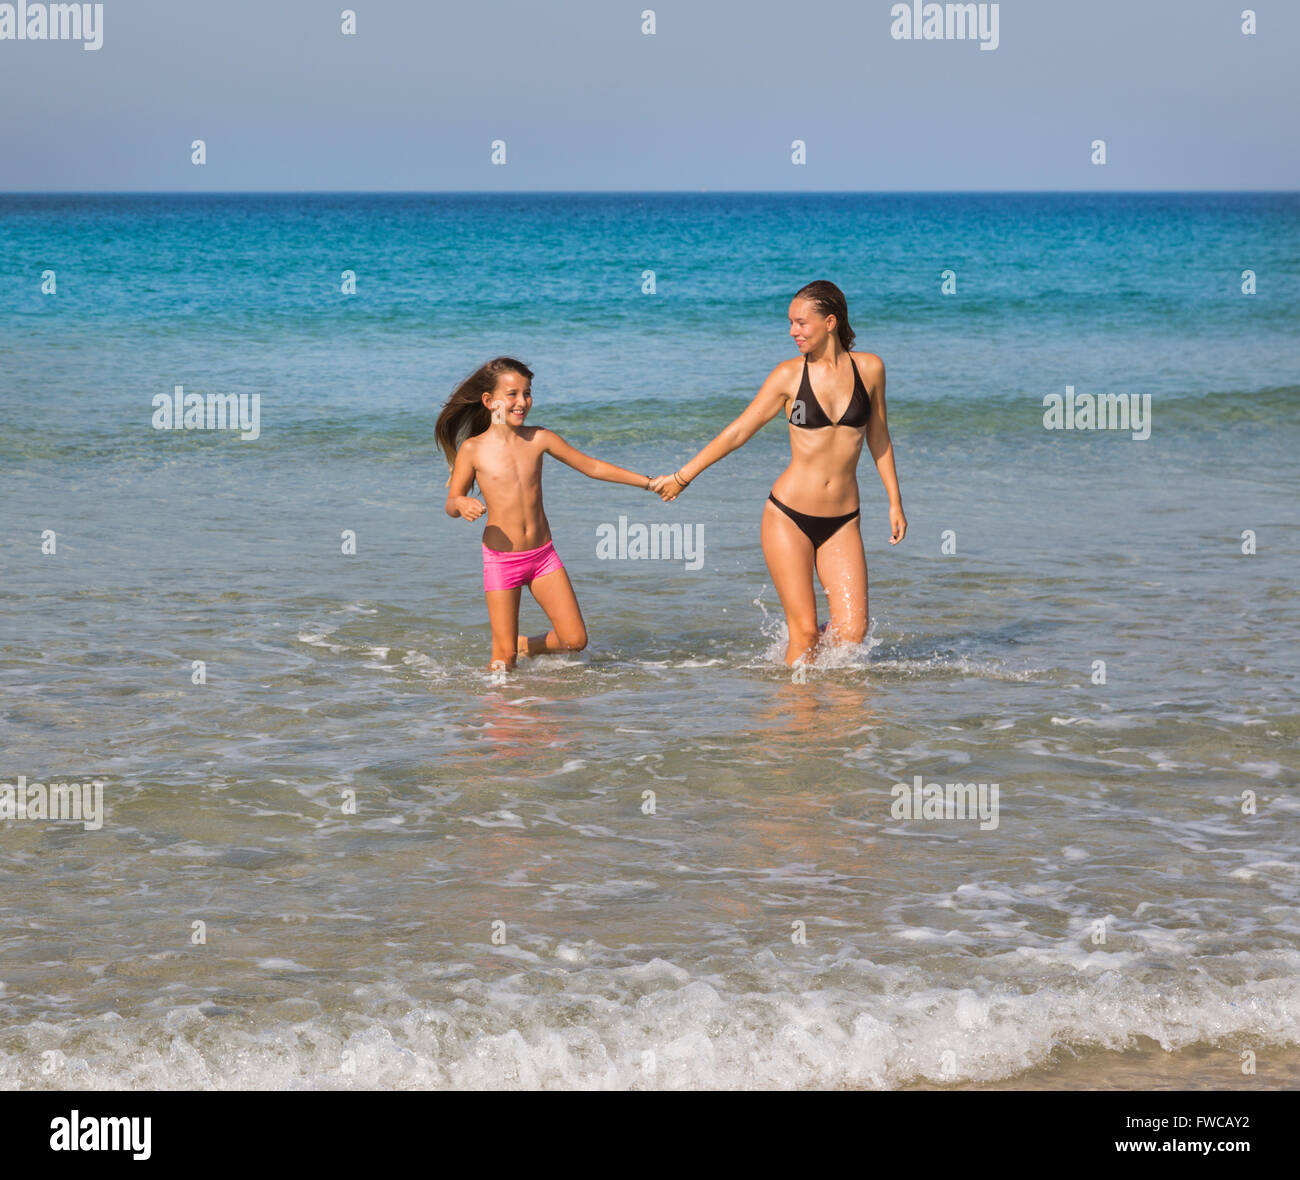 Tarifa, Costa de la Luz, Cadiz Province, Andalusia, southern Spain.  Seven year old and fifteen year old girls playing - Stock Image